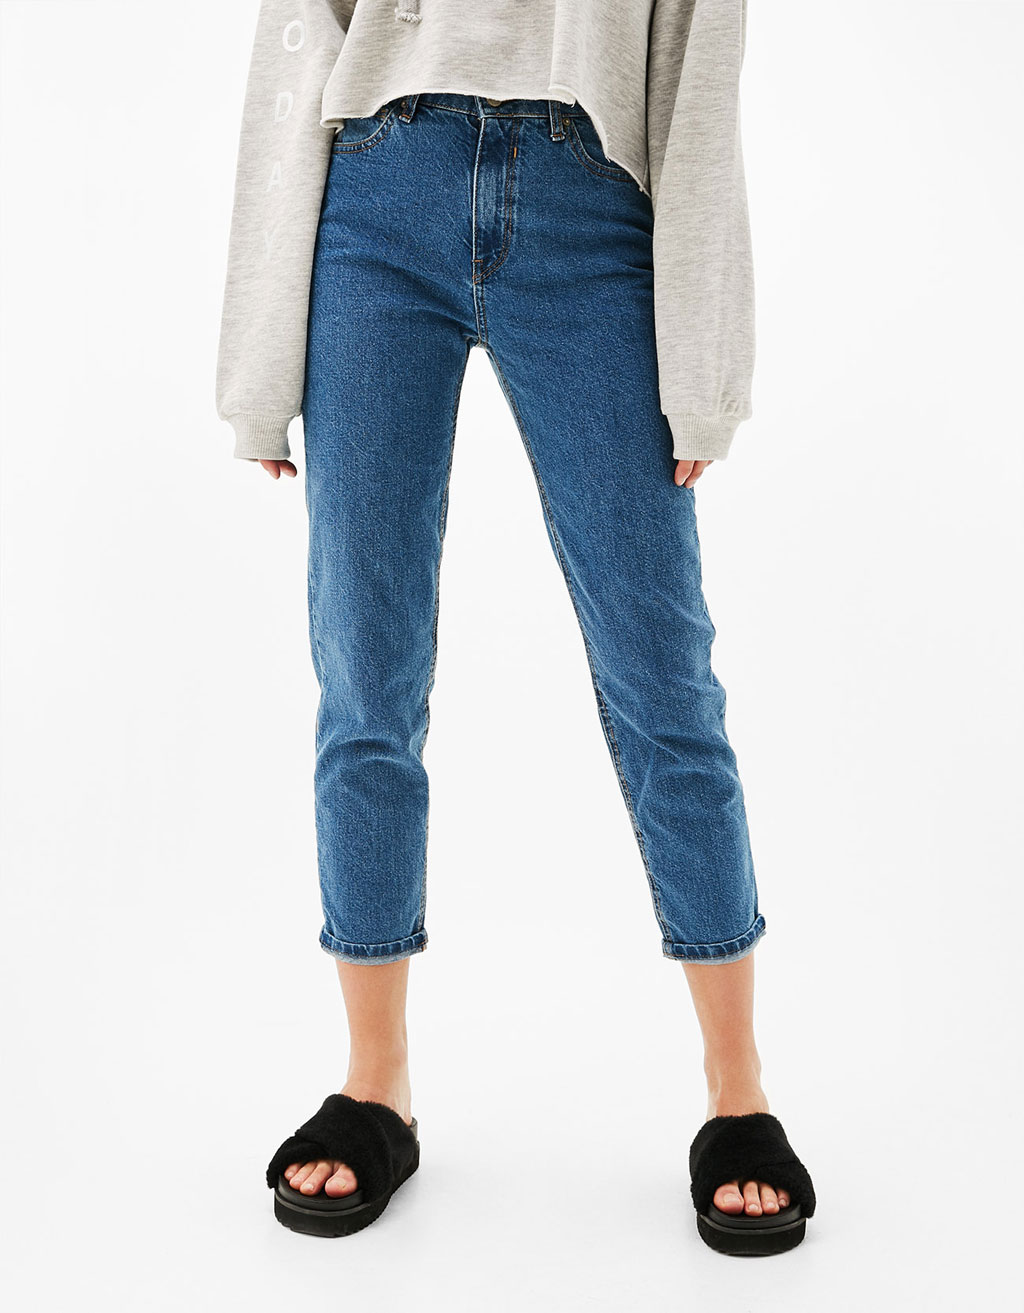 Jean hight waist 'Mom Fit' - Jeans - Bershka France